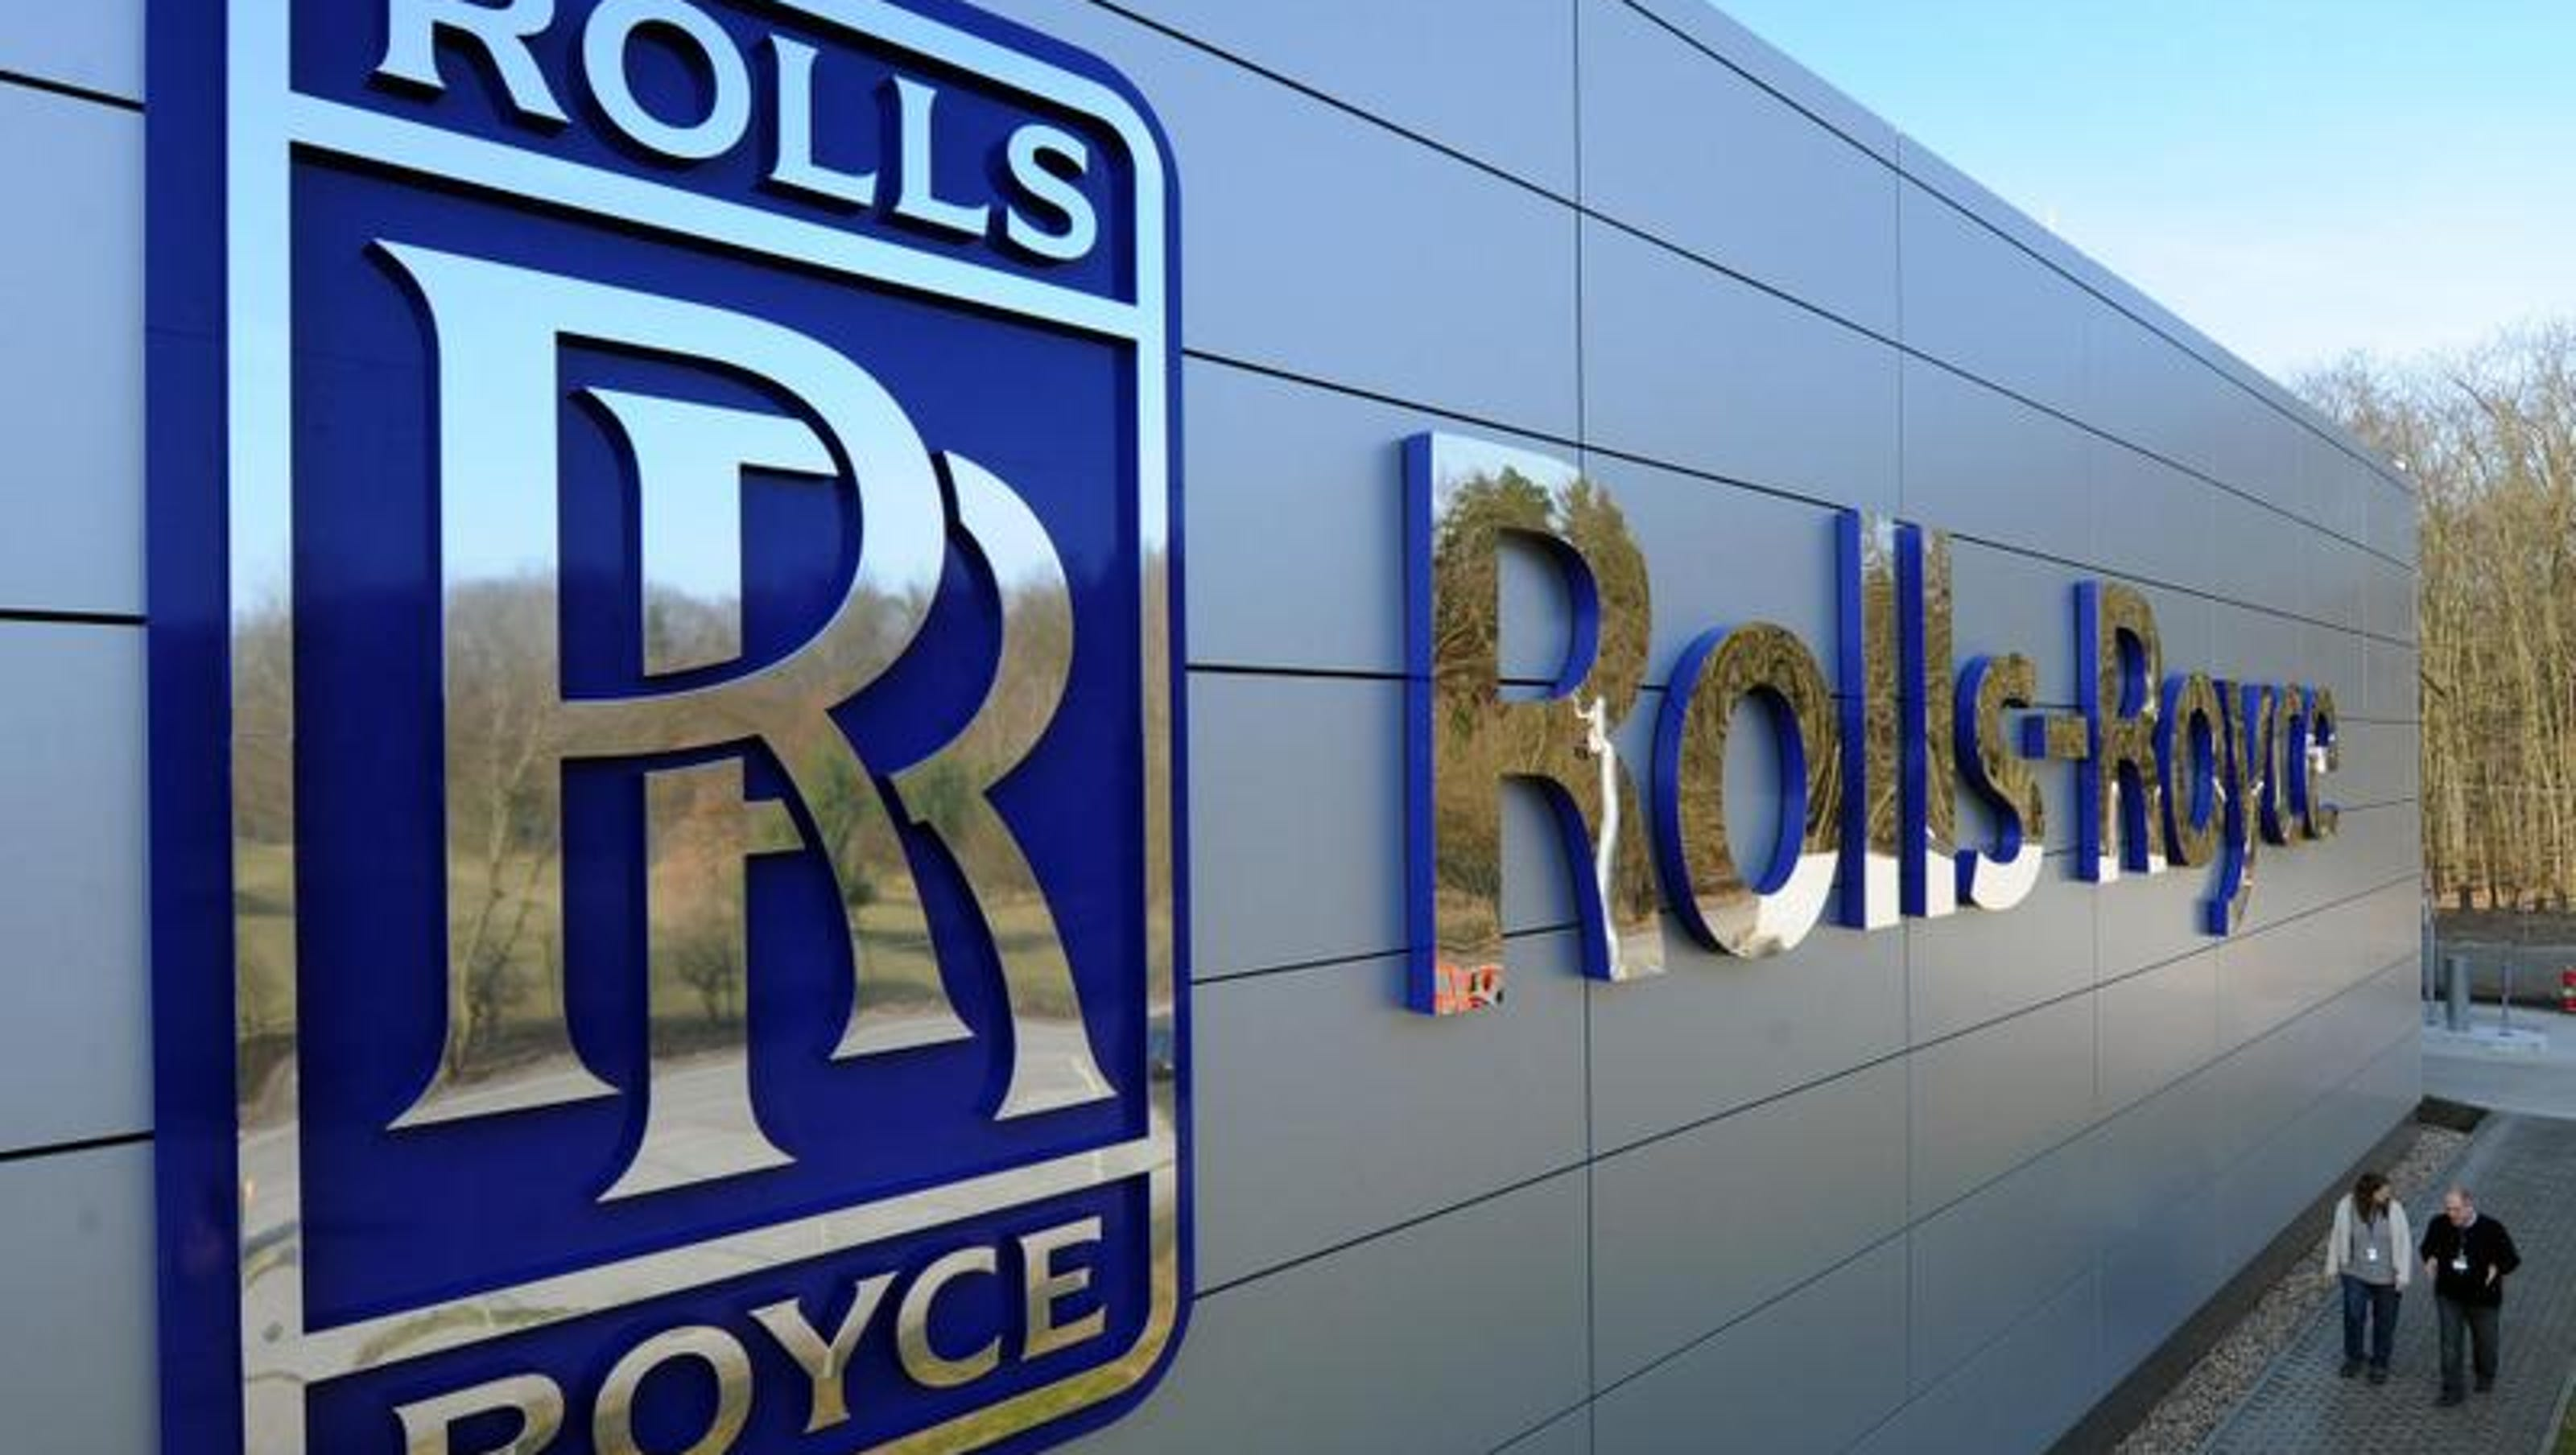 rolls-royce to cut about 400 employees mostly in indy